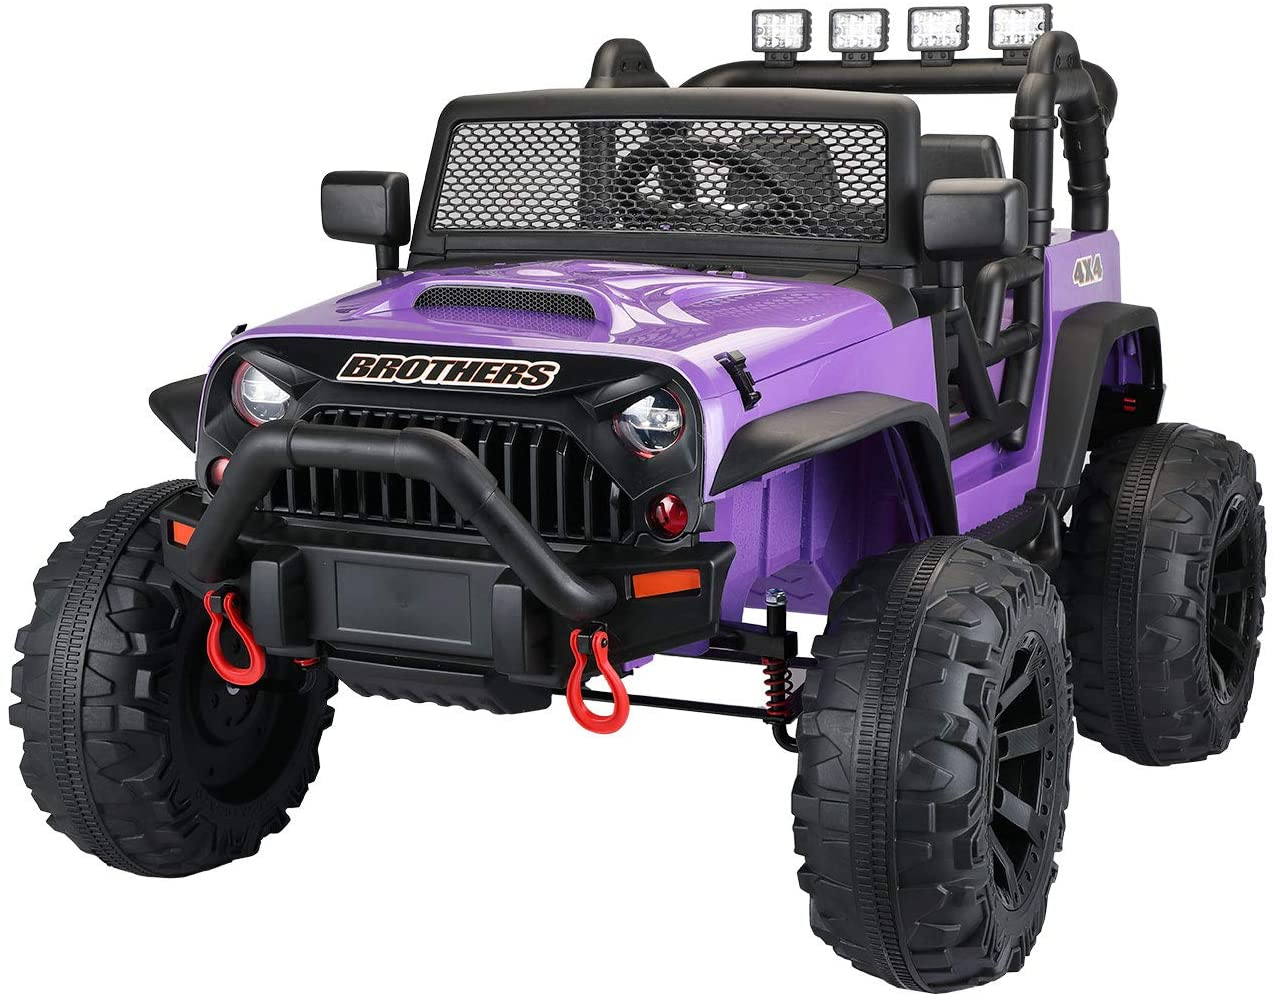 TOBBI 12V Kids Ride On Truck Toys with Remote Control Electric Vehicles with 3 Speeds for Boys Girls in Purple